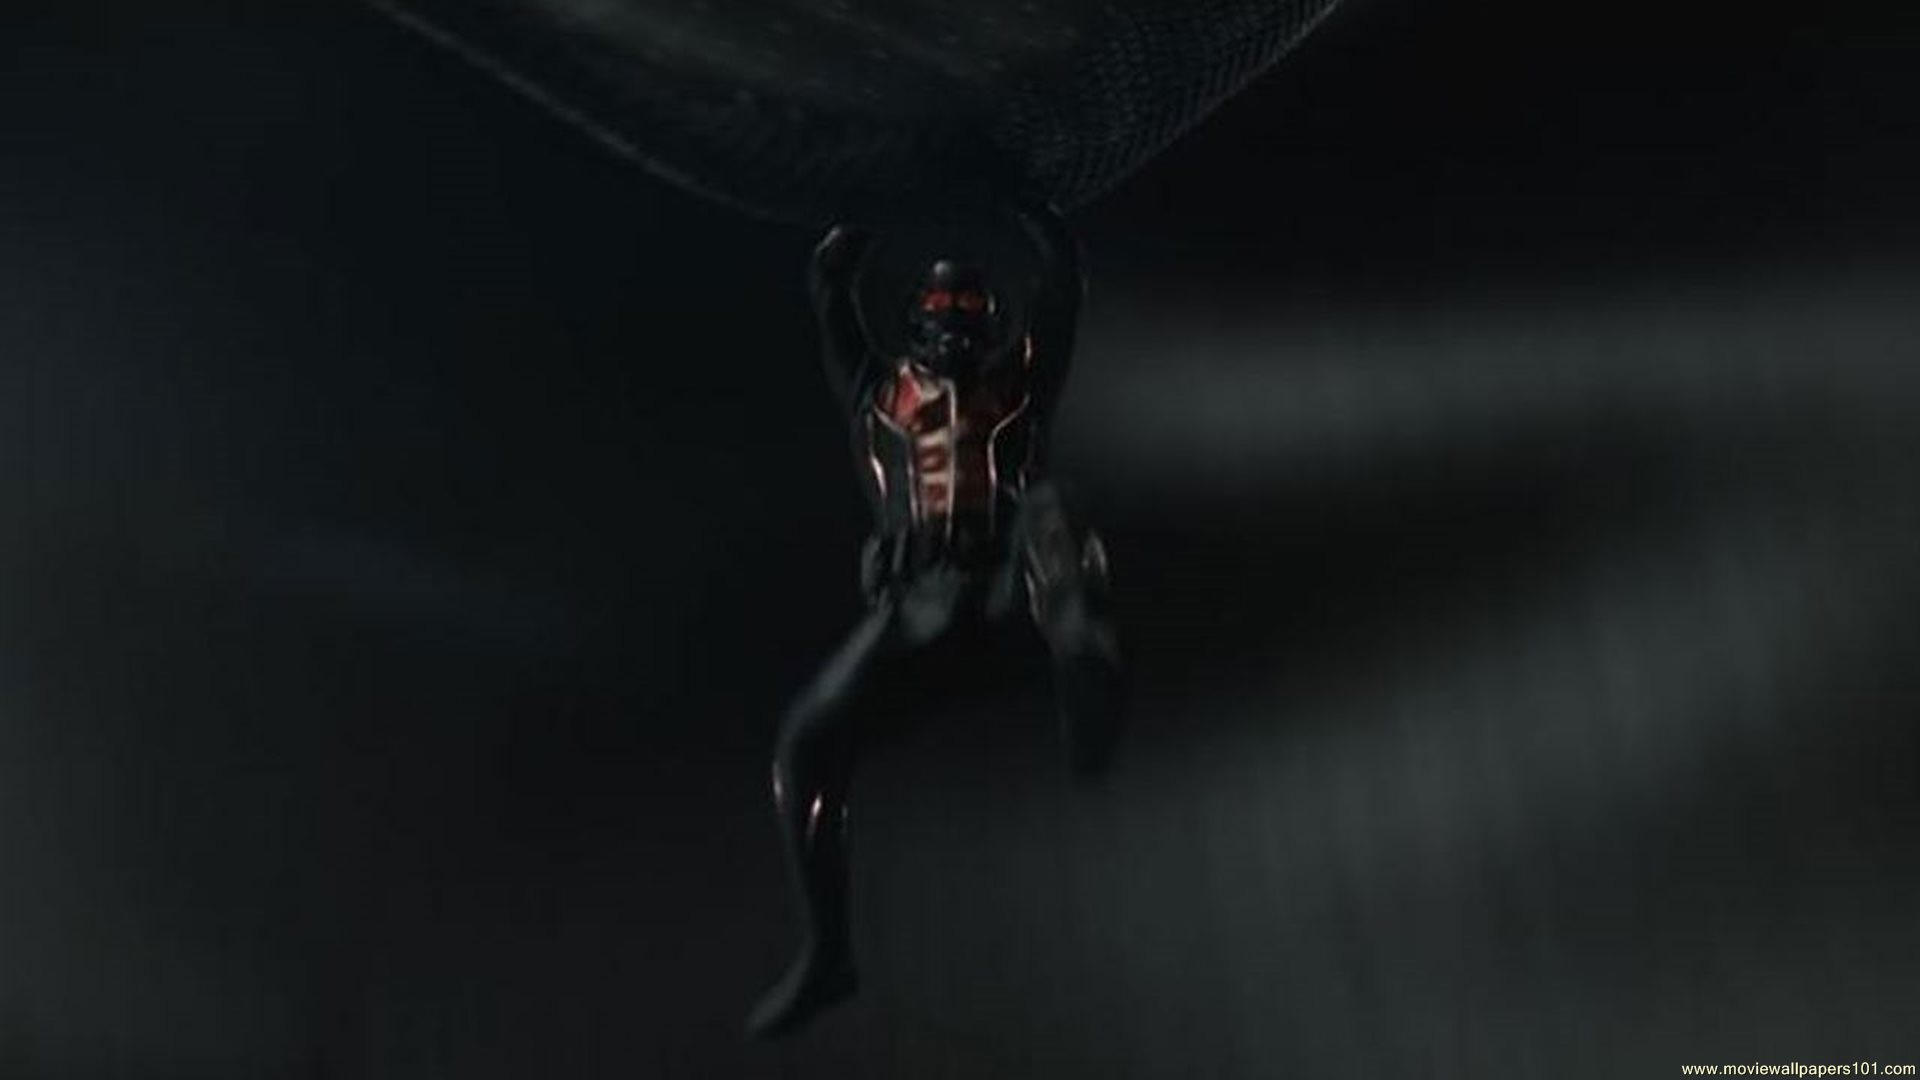 Ant Man 2015 Movie Trailer HD Wallpaper   Stylish HD Wallpapers 1920x1080